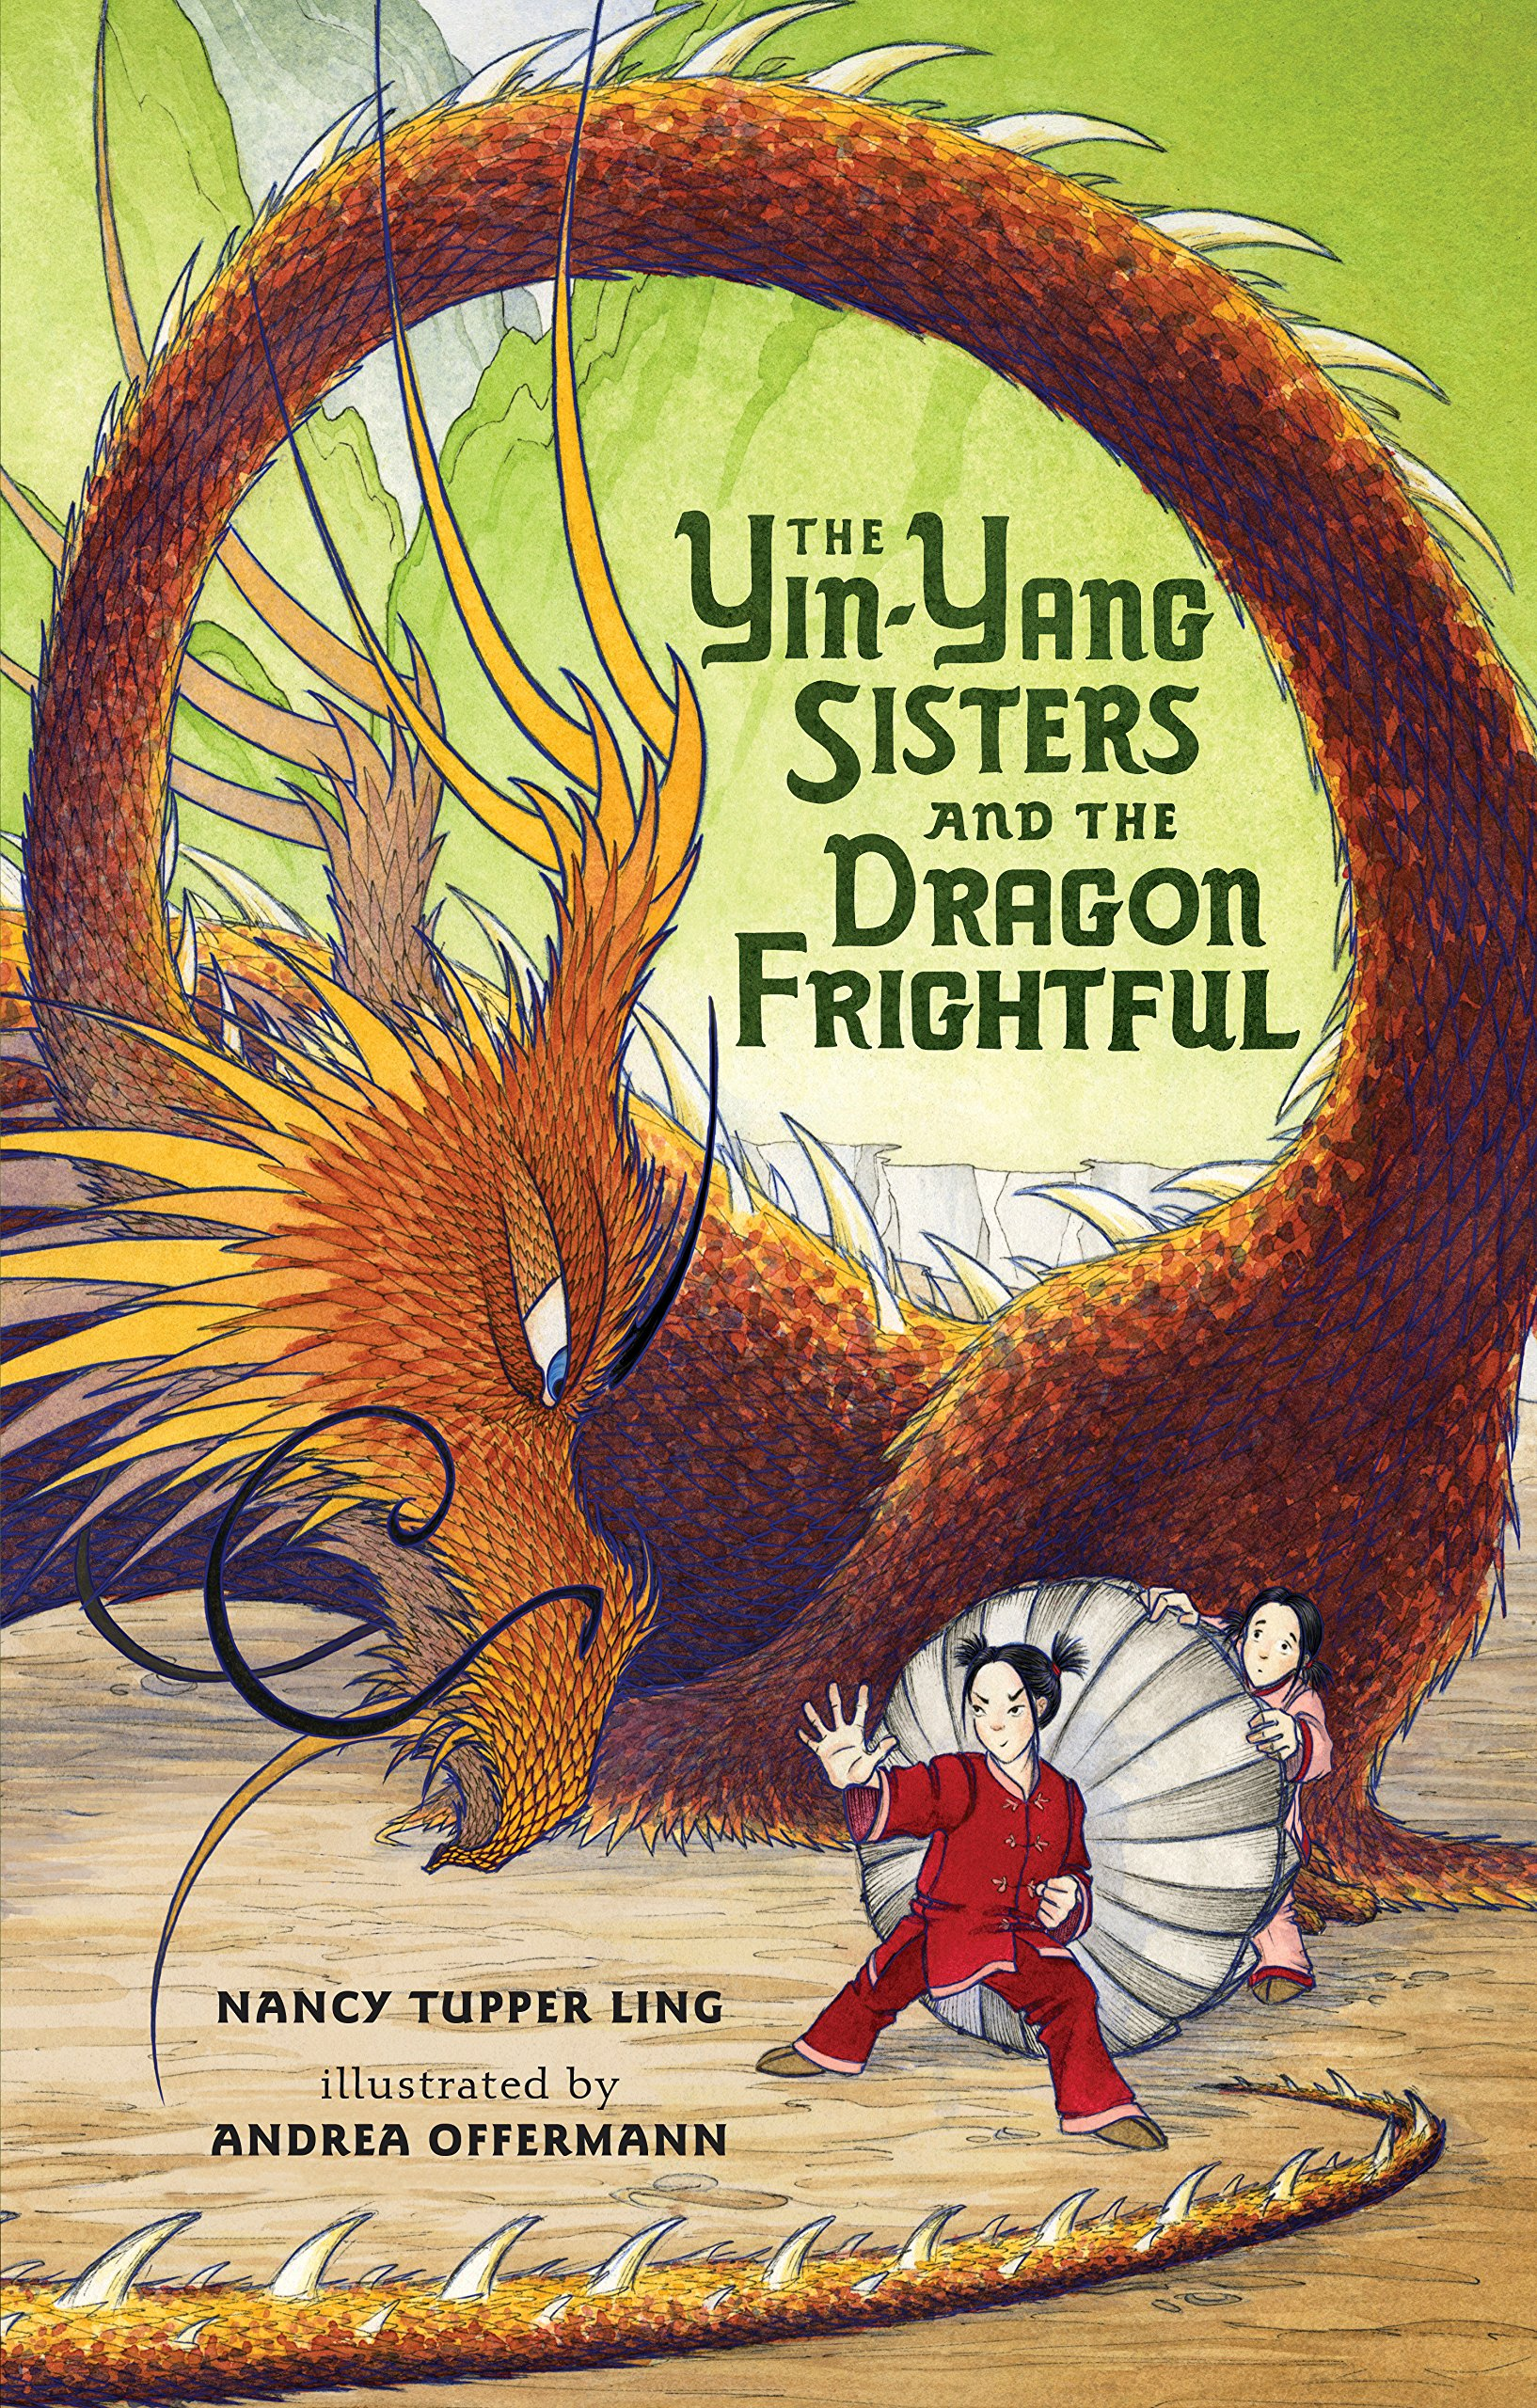 Image result for the yin-yang sisters and the dragon frightful